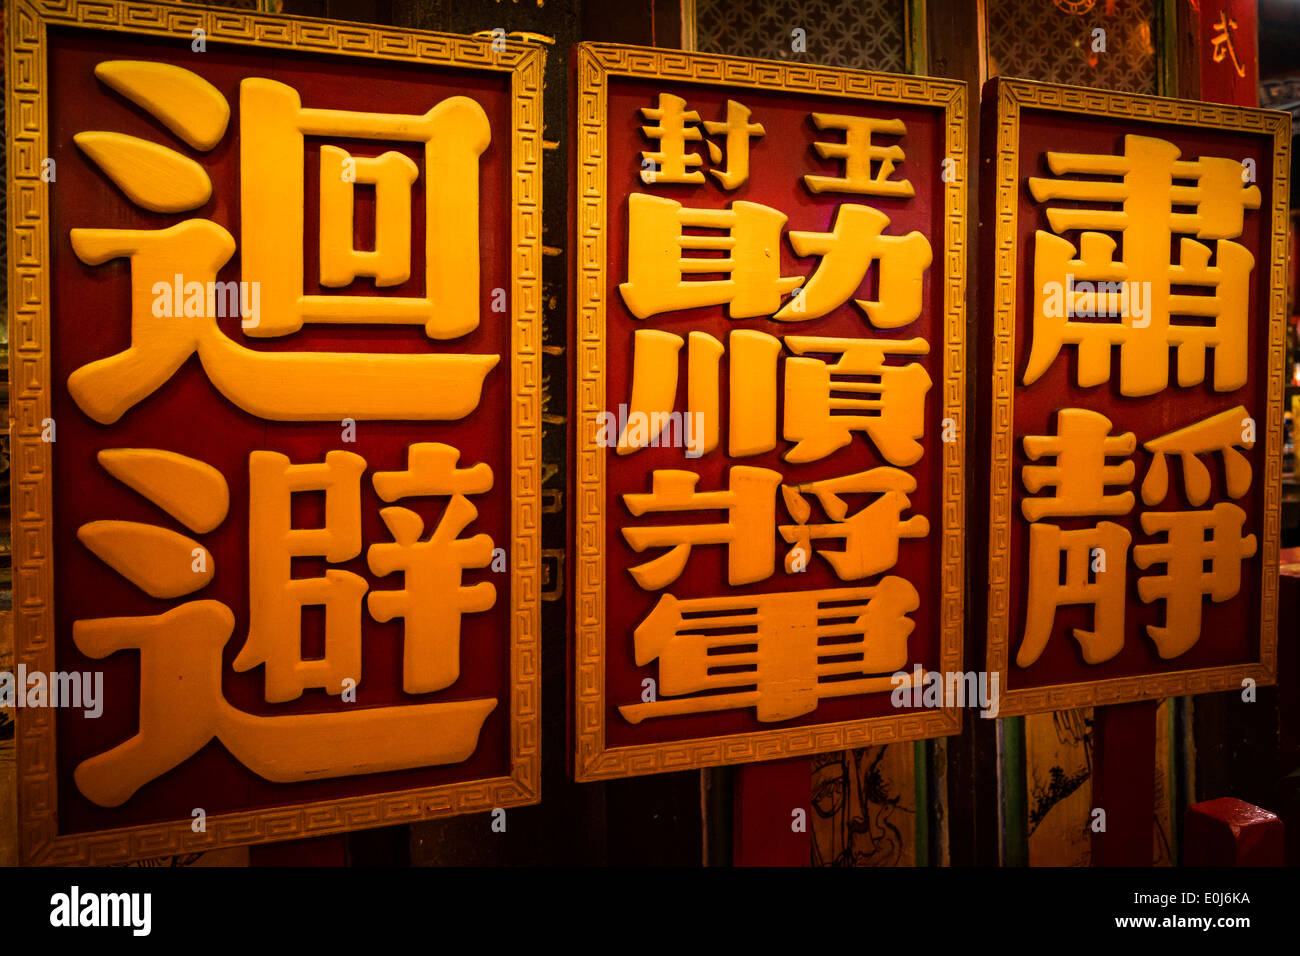 Signage written in Chinese Character - Stock Image